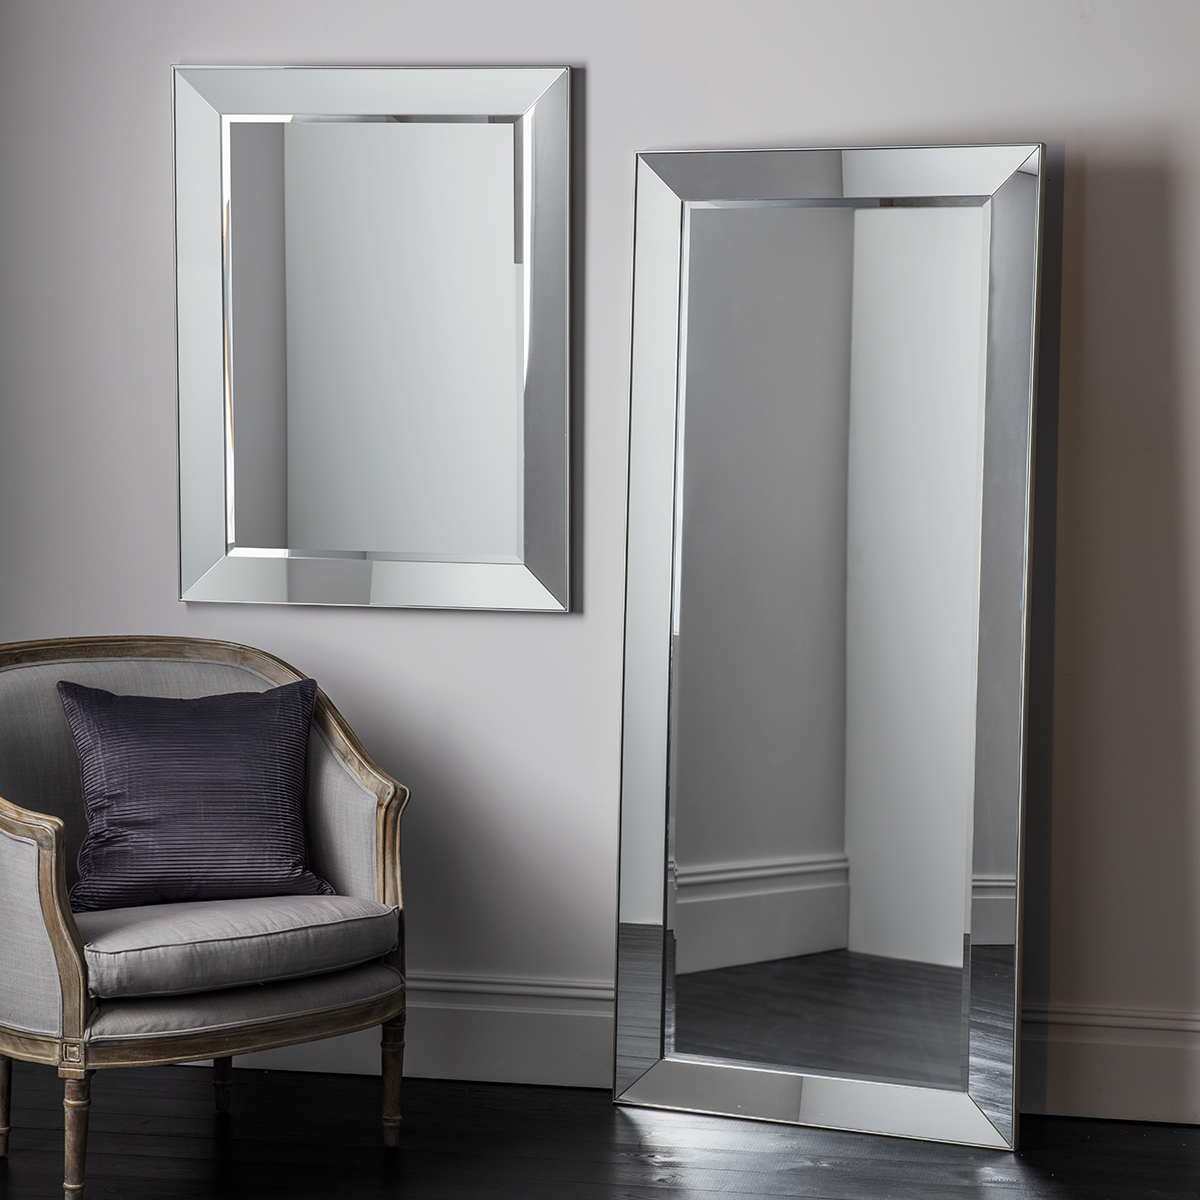 Appealing Oversized Mirrors for Home Decoration Ideas: 3×5 Mirror | Oversized Mirrors | Cheap Oversized Wall Mirrors